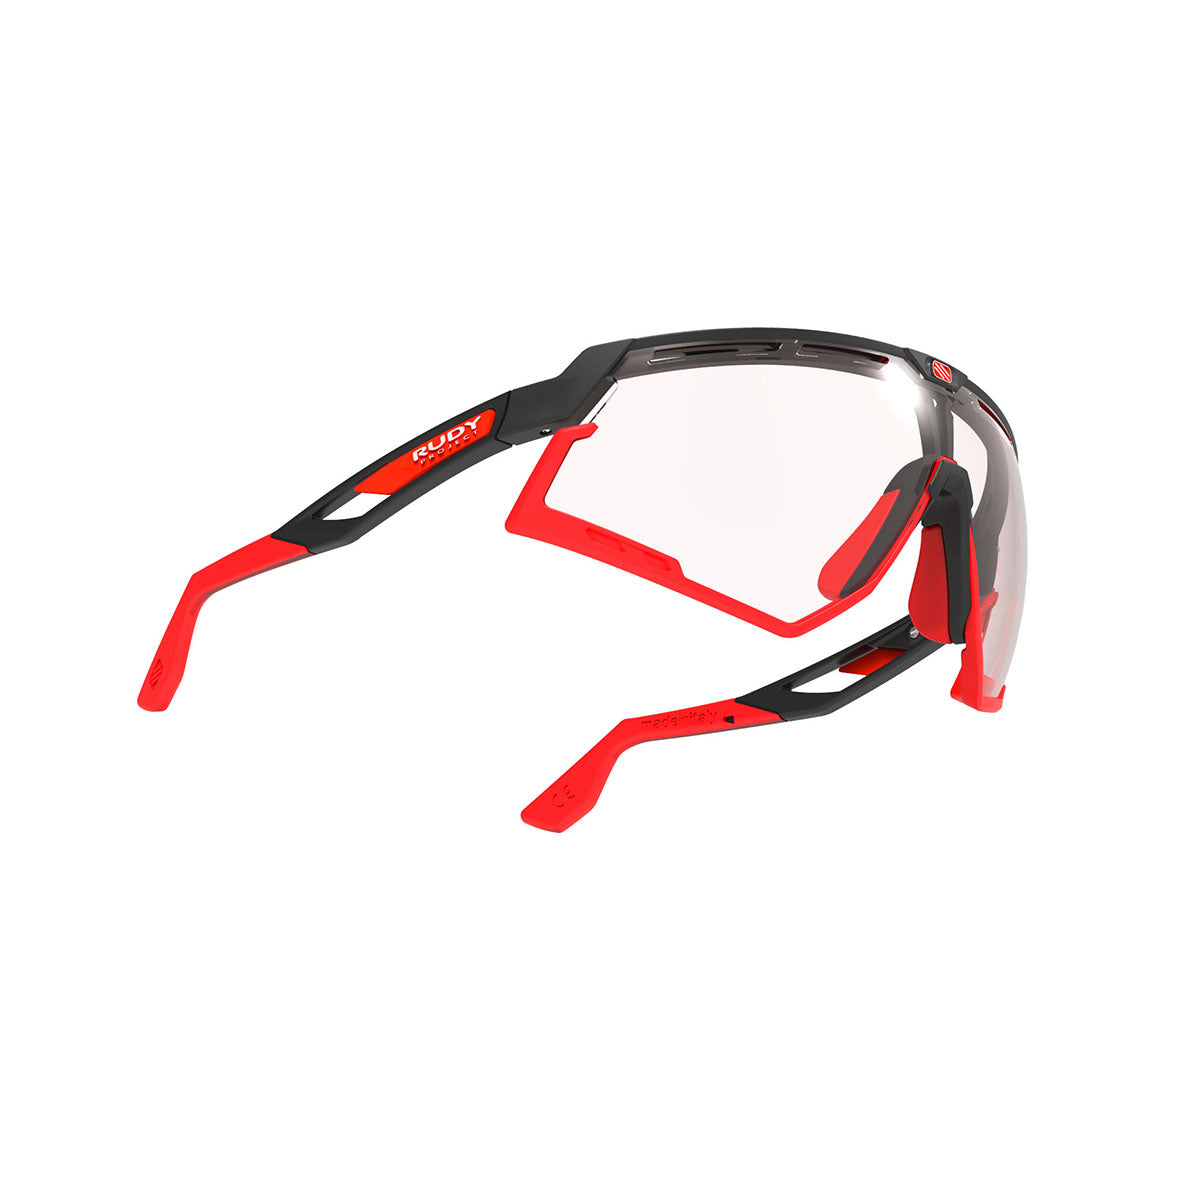 Rudy Project - Defender - frame color: Matte Black - lens color: ImpactX-2 Photochromic Clear to Red - Bumper Color: Red - photo angle: Bottom Front Angle Variant Hover Image